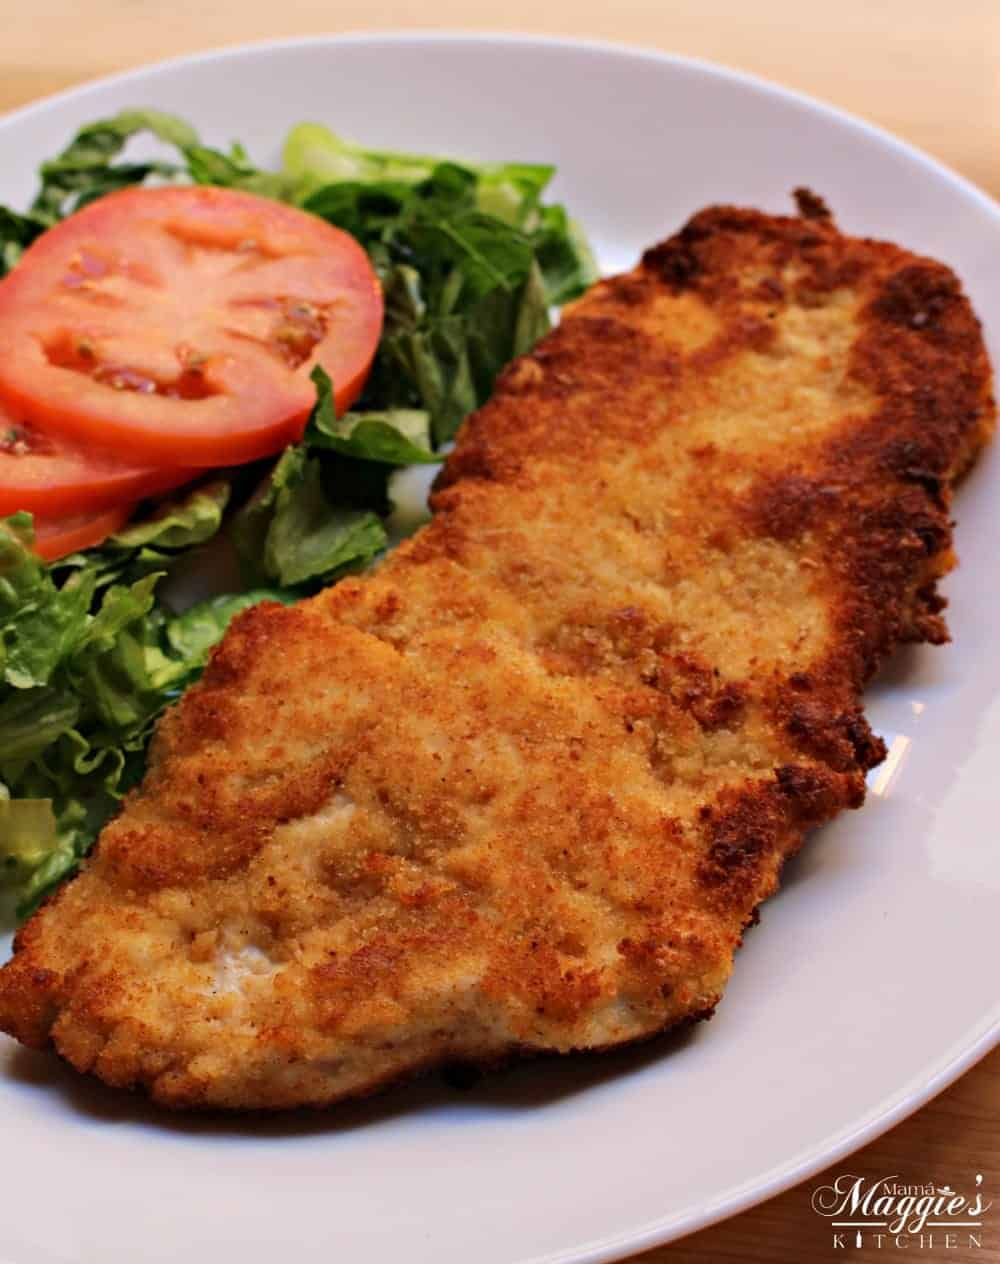 Milanesa de Pollo (Chicken Milanese) is a yummy dish that comes together in under 30 minutes.